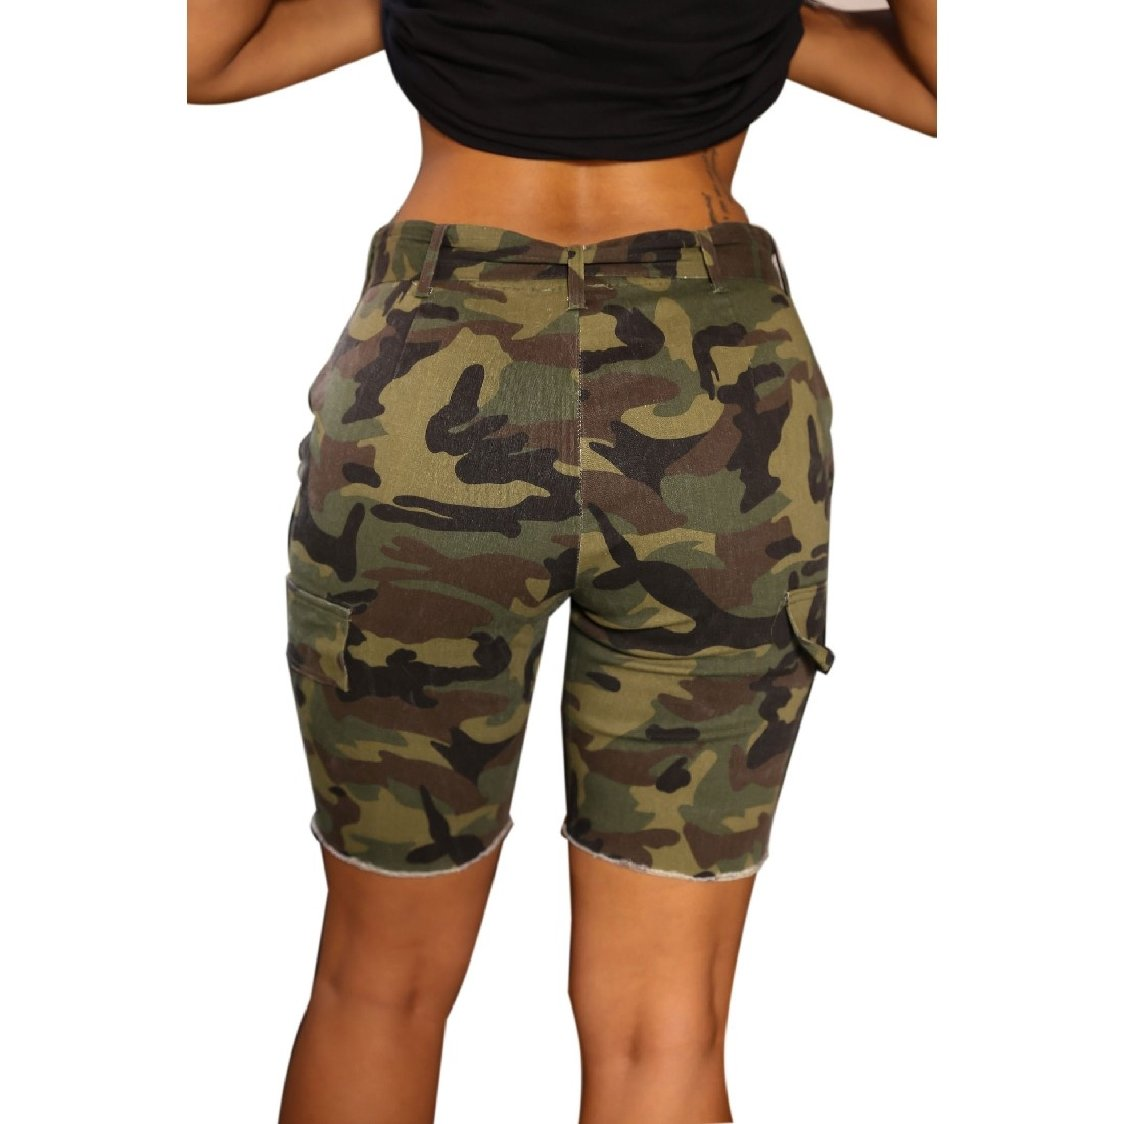 Freely Womens Mid-Rise Standard-fit 1//2 Length Camouflage Print Beachwear Shorts Jeans